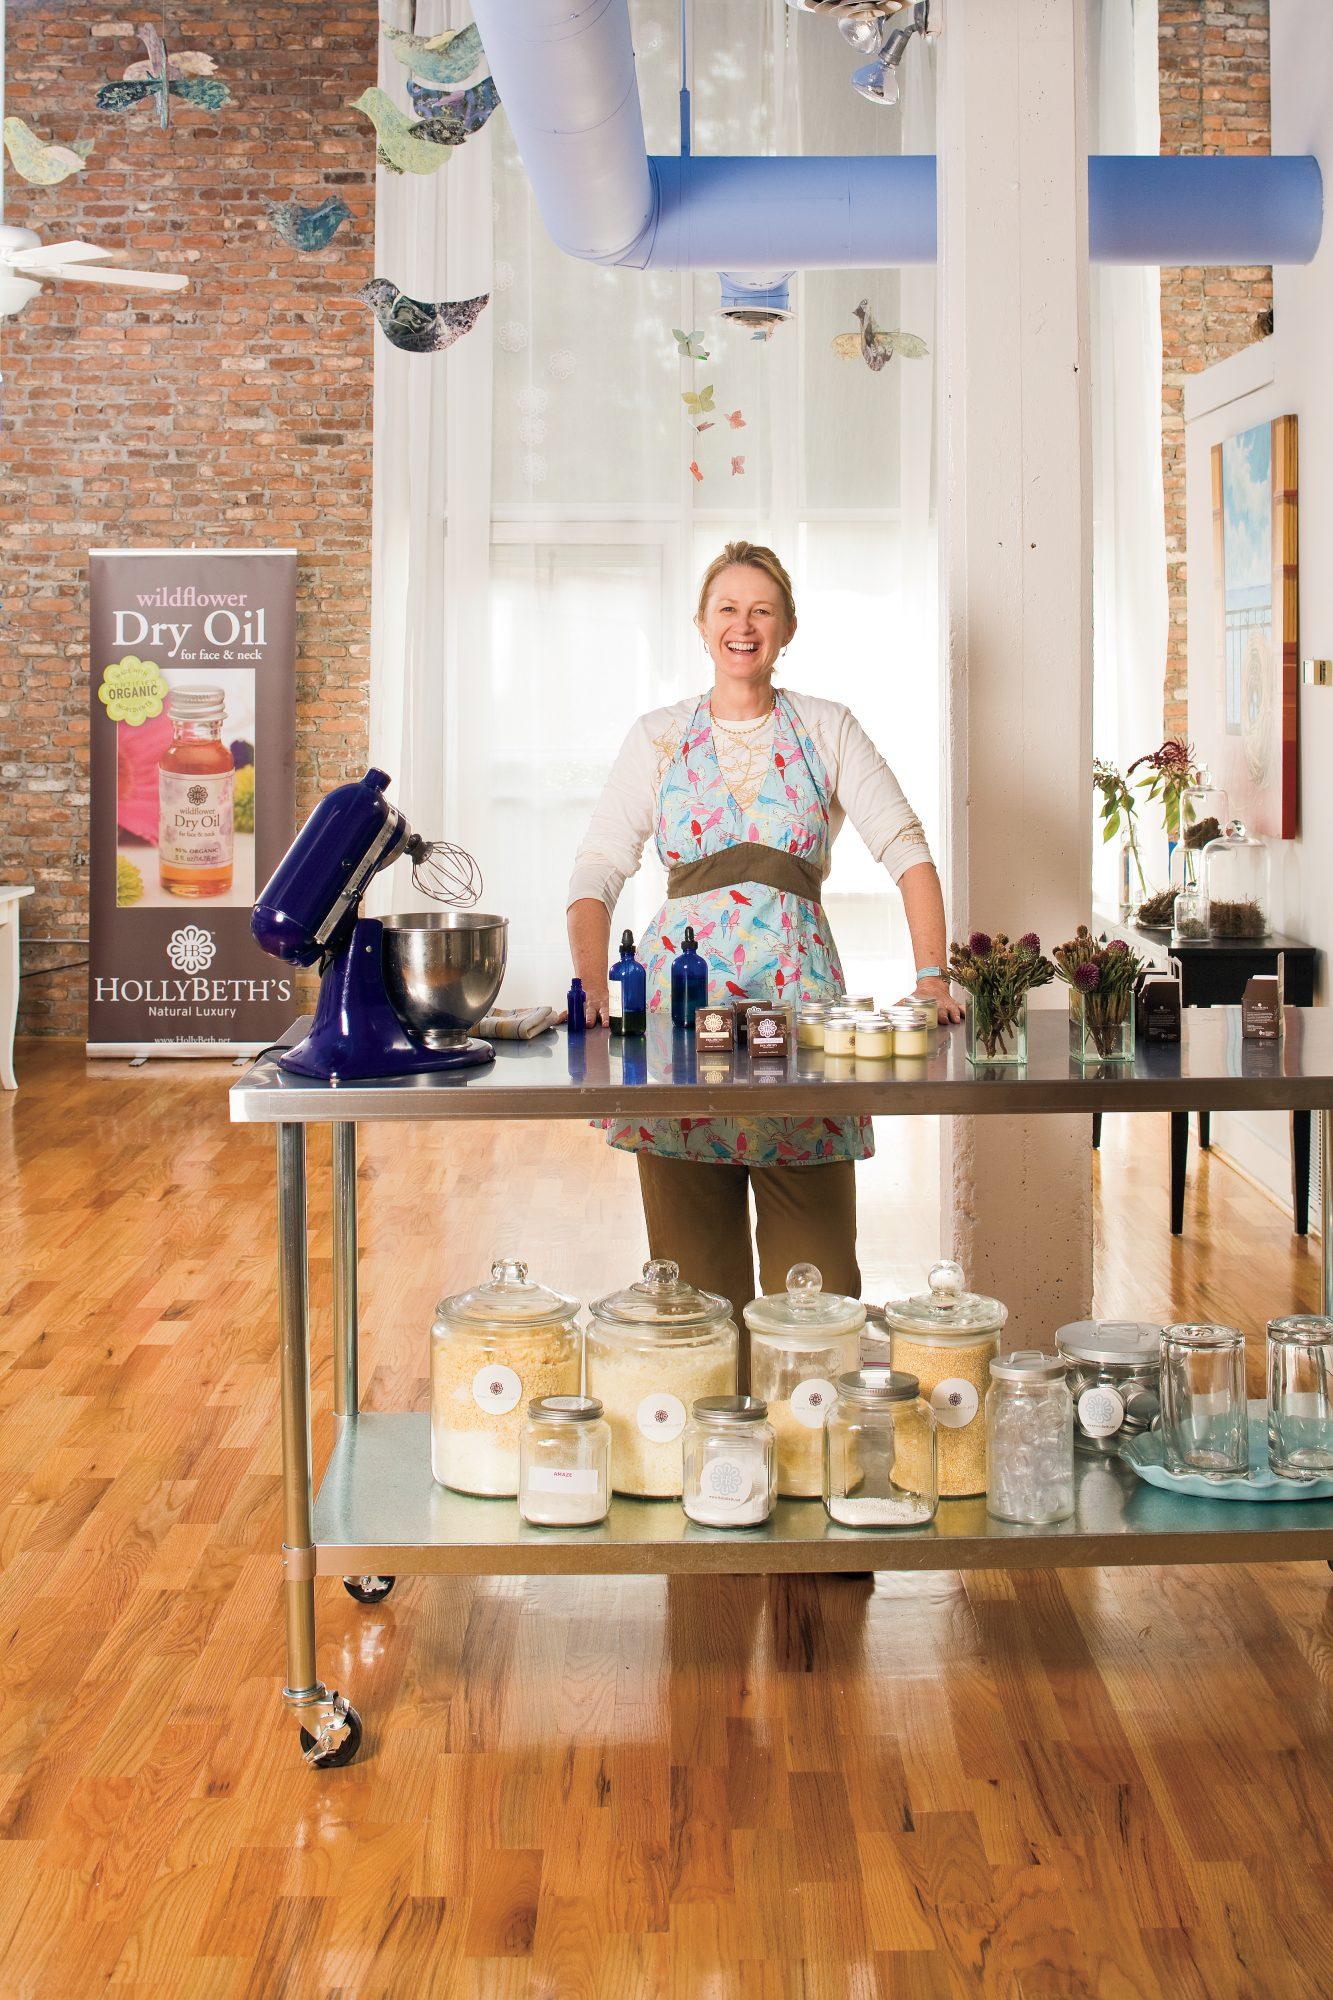 HollyBeth's Natural Luxury